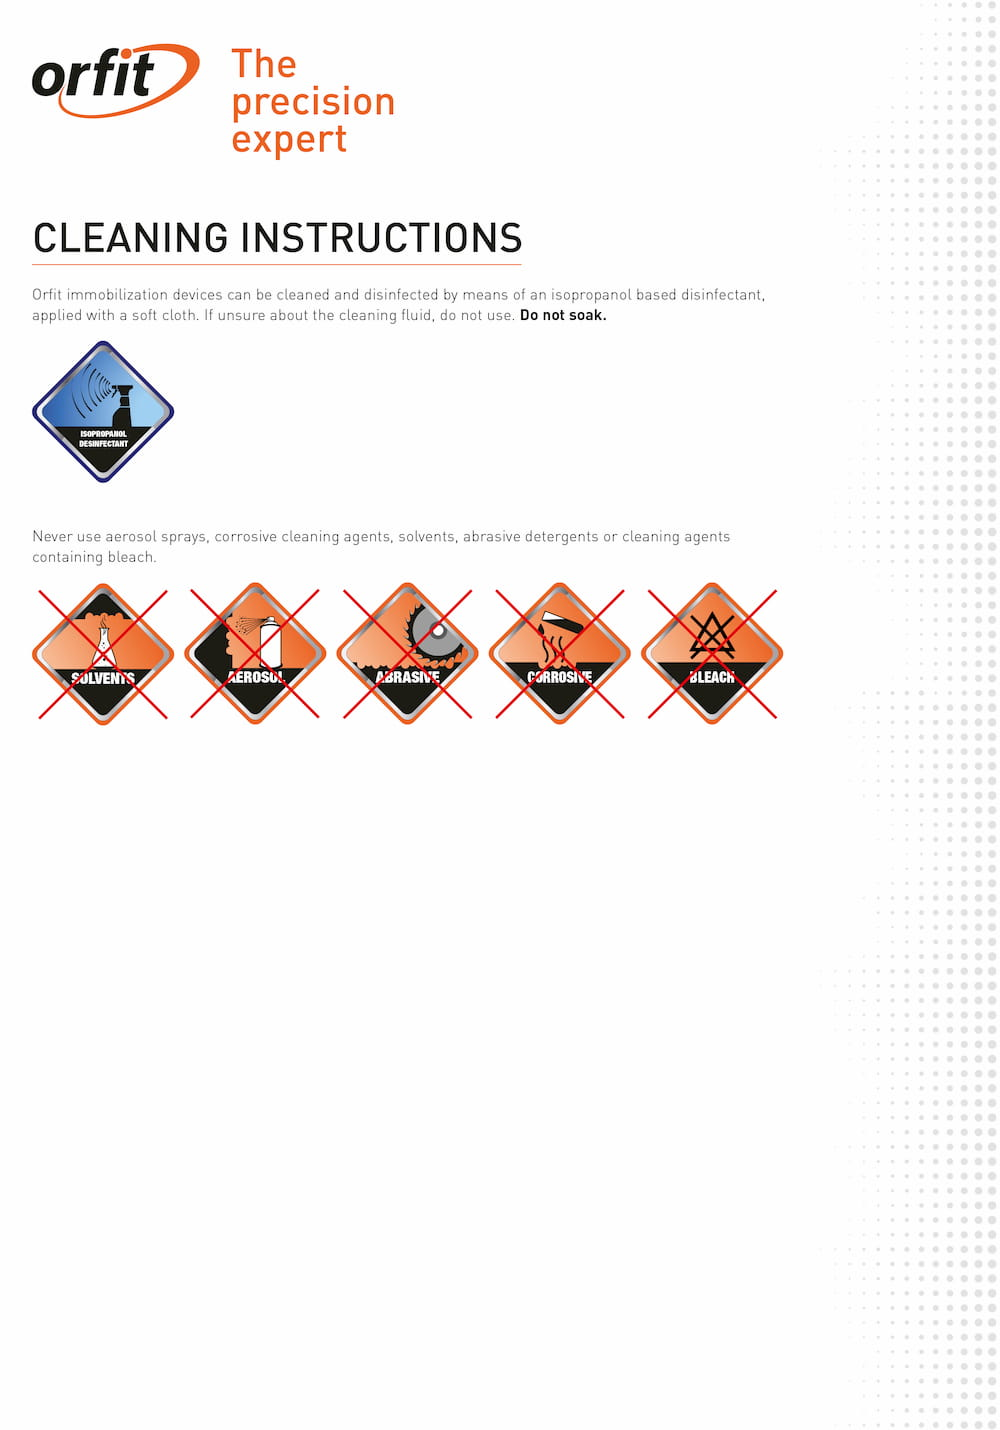 Cleaning guide to clean and disinfect Orfit Products